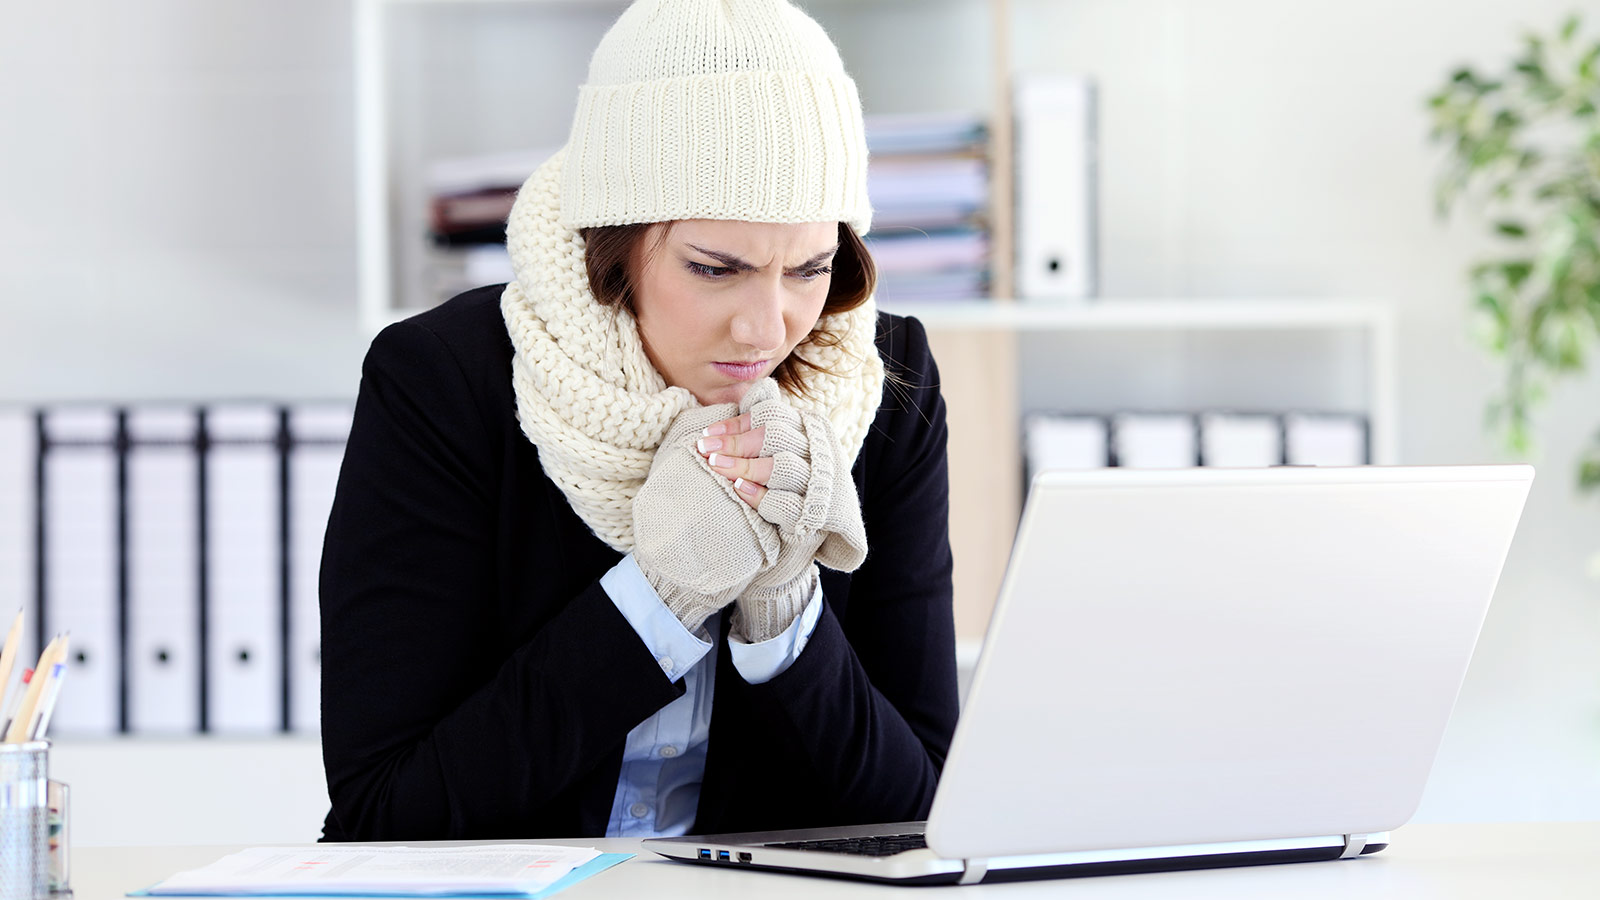 Game changing study reveals that turning up the thermostat may increase women's productivity